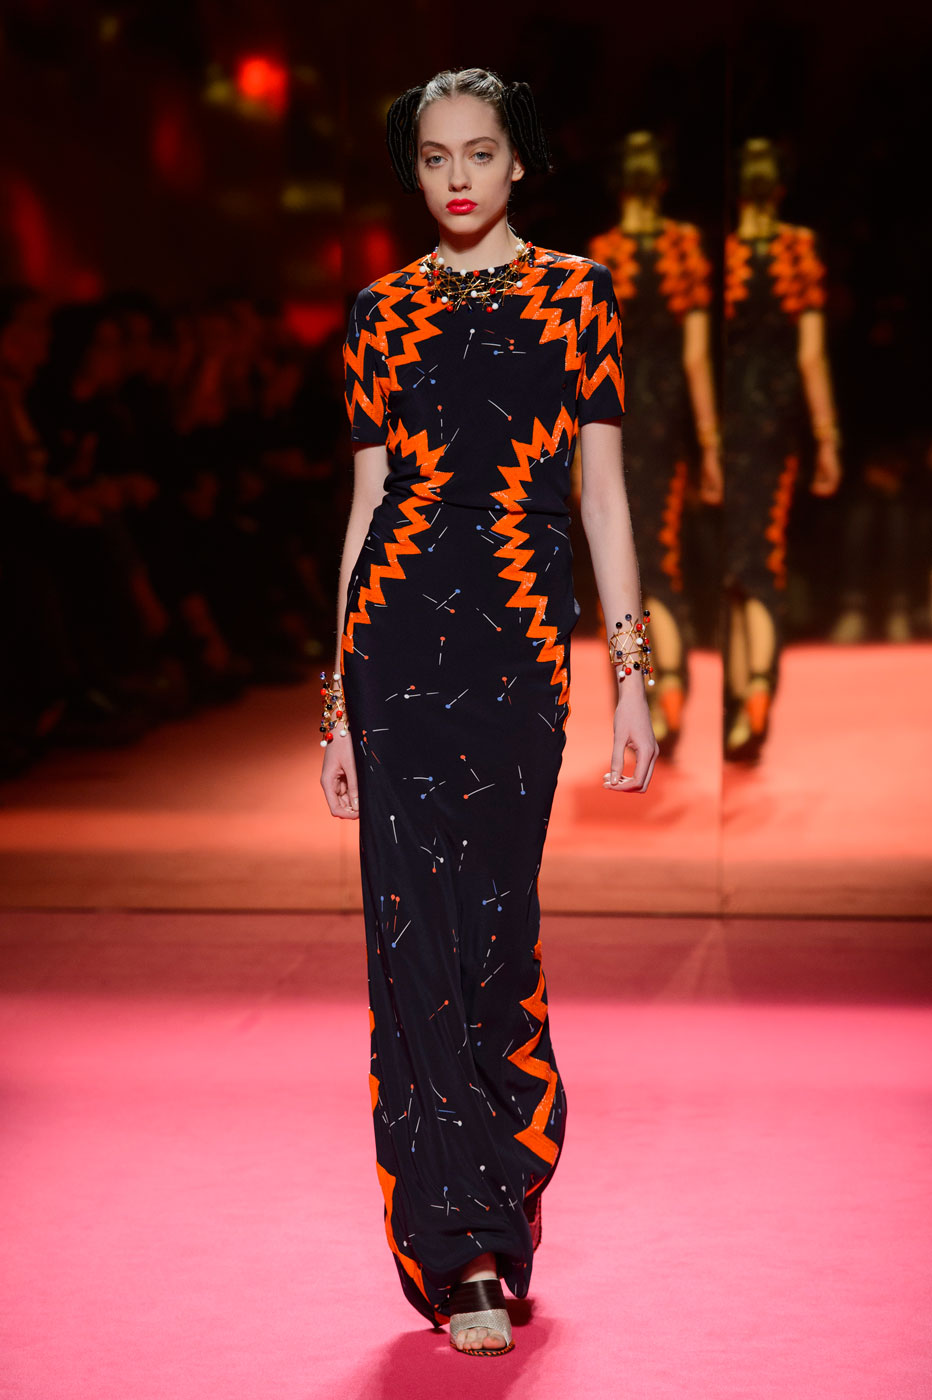 Schiaparelli-fashion-runway-show-haute-couture-paris-spring-summer-2015-the-impression-44